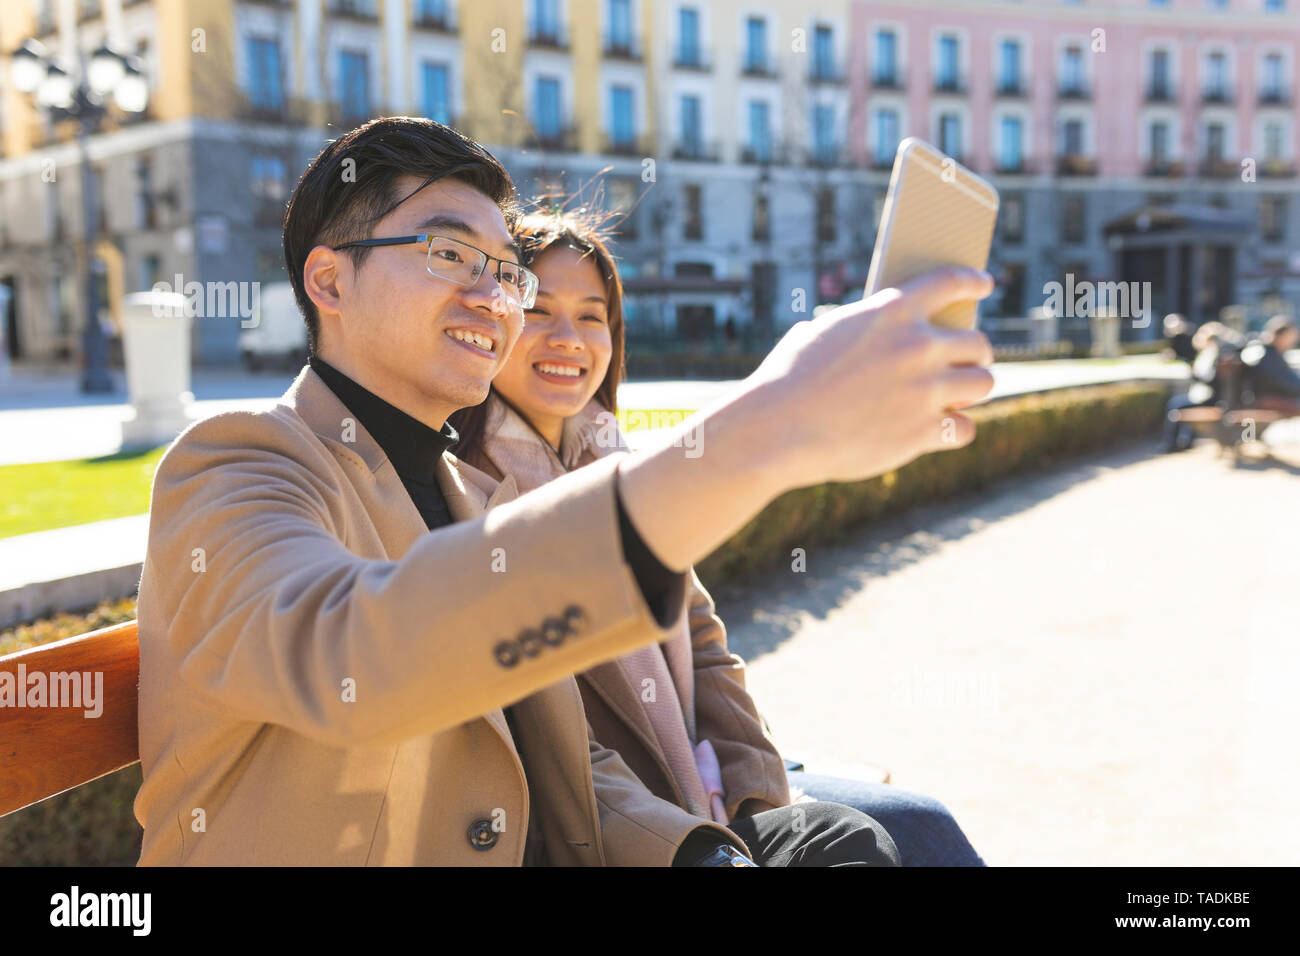 Spain, Madrid, young couple resting on a bench and taking a selfie in the city - Stock Image